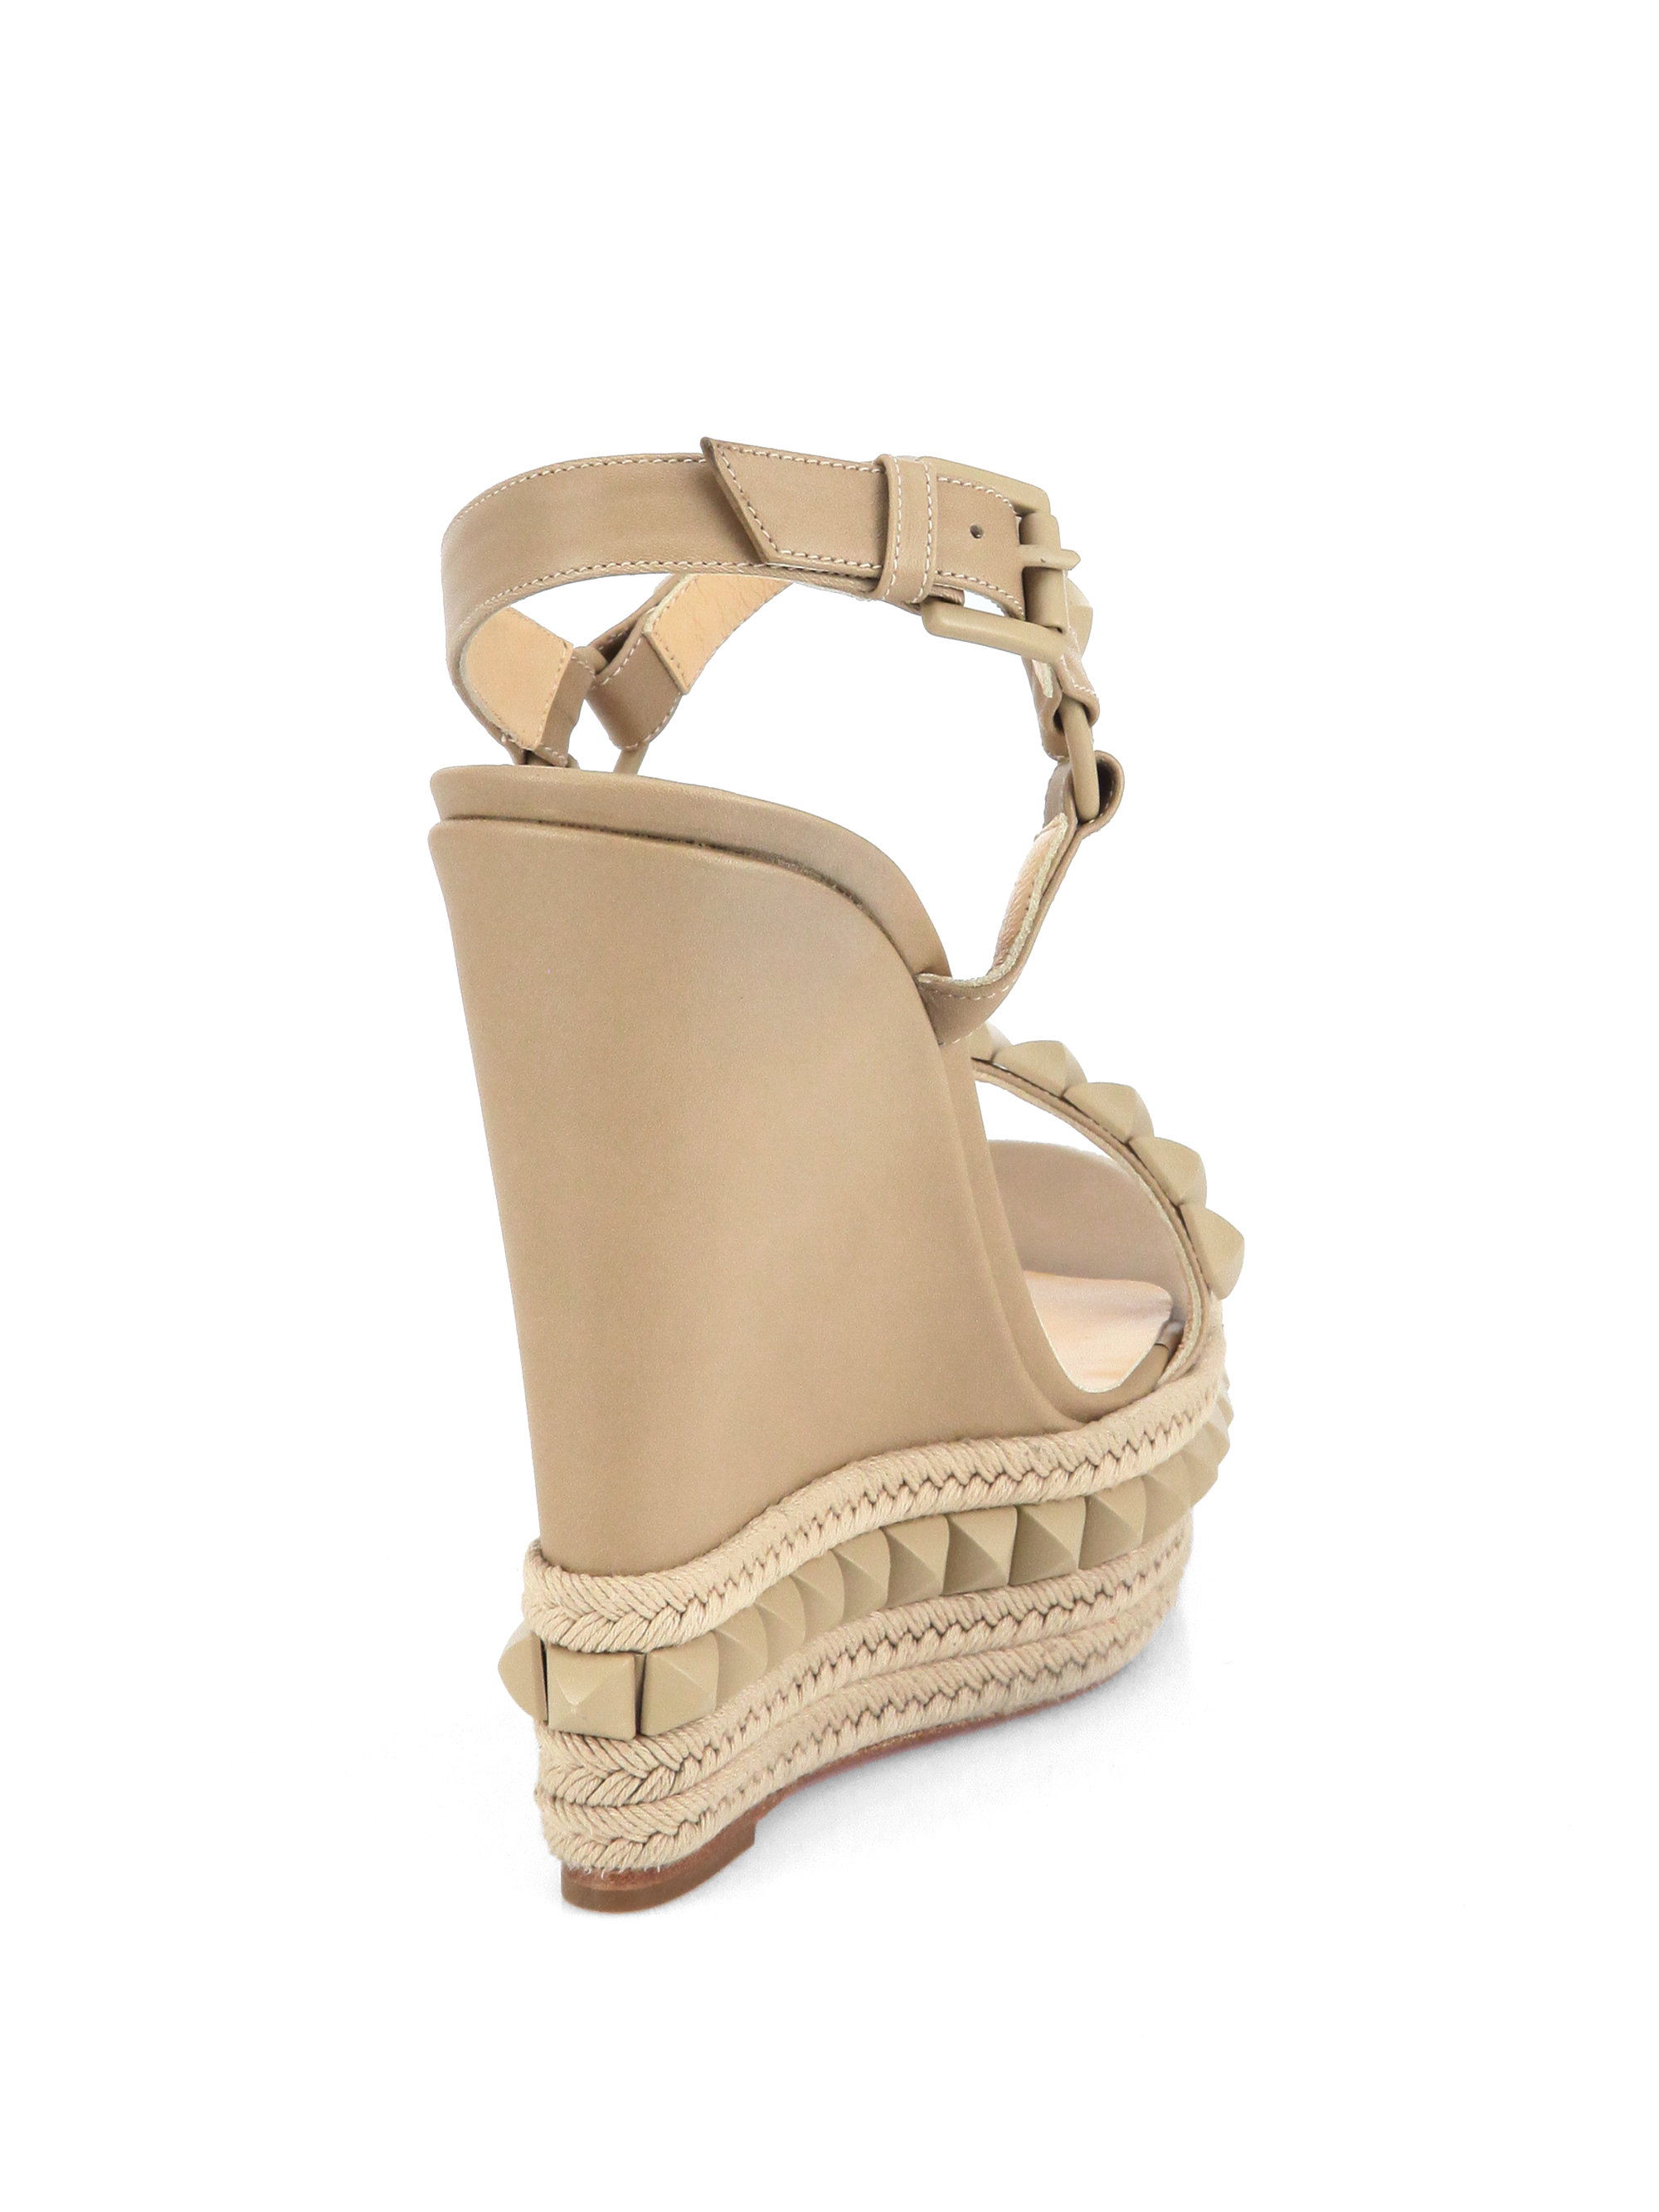 640493c79664 christian-louboutin-beige-cataclou-studded-leather-wedge-sandals-